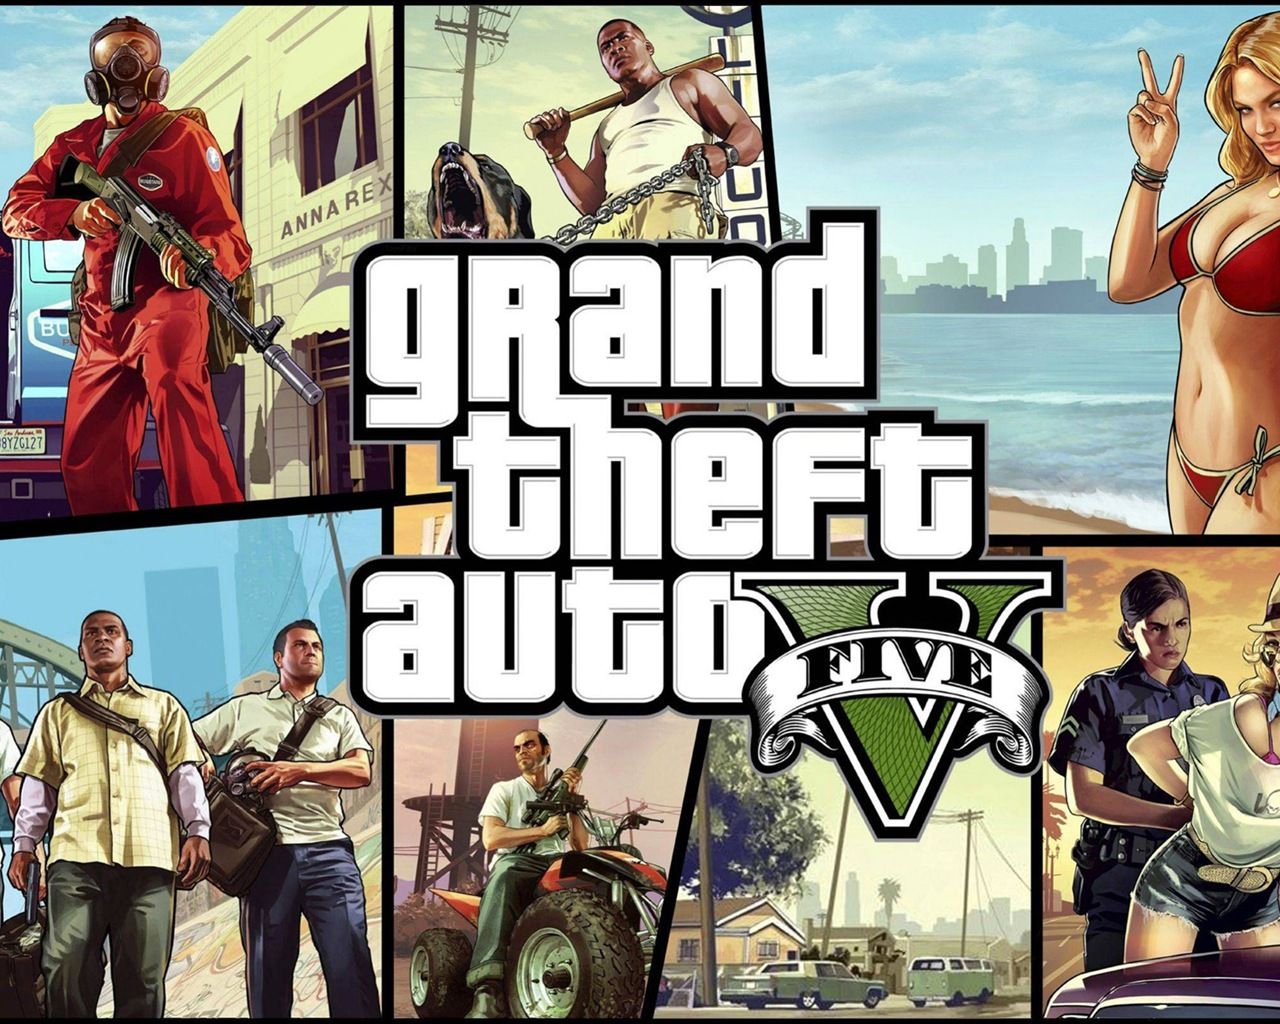 grand theft auto v gta 5 hd game wallpapers #8 - 1280x1024 wallpaper